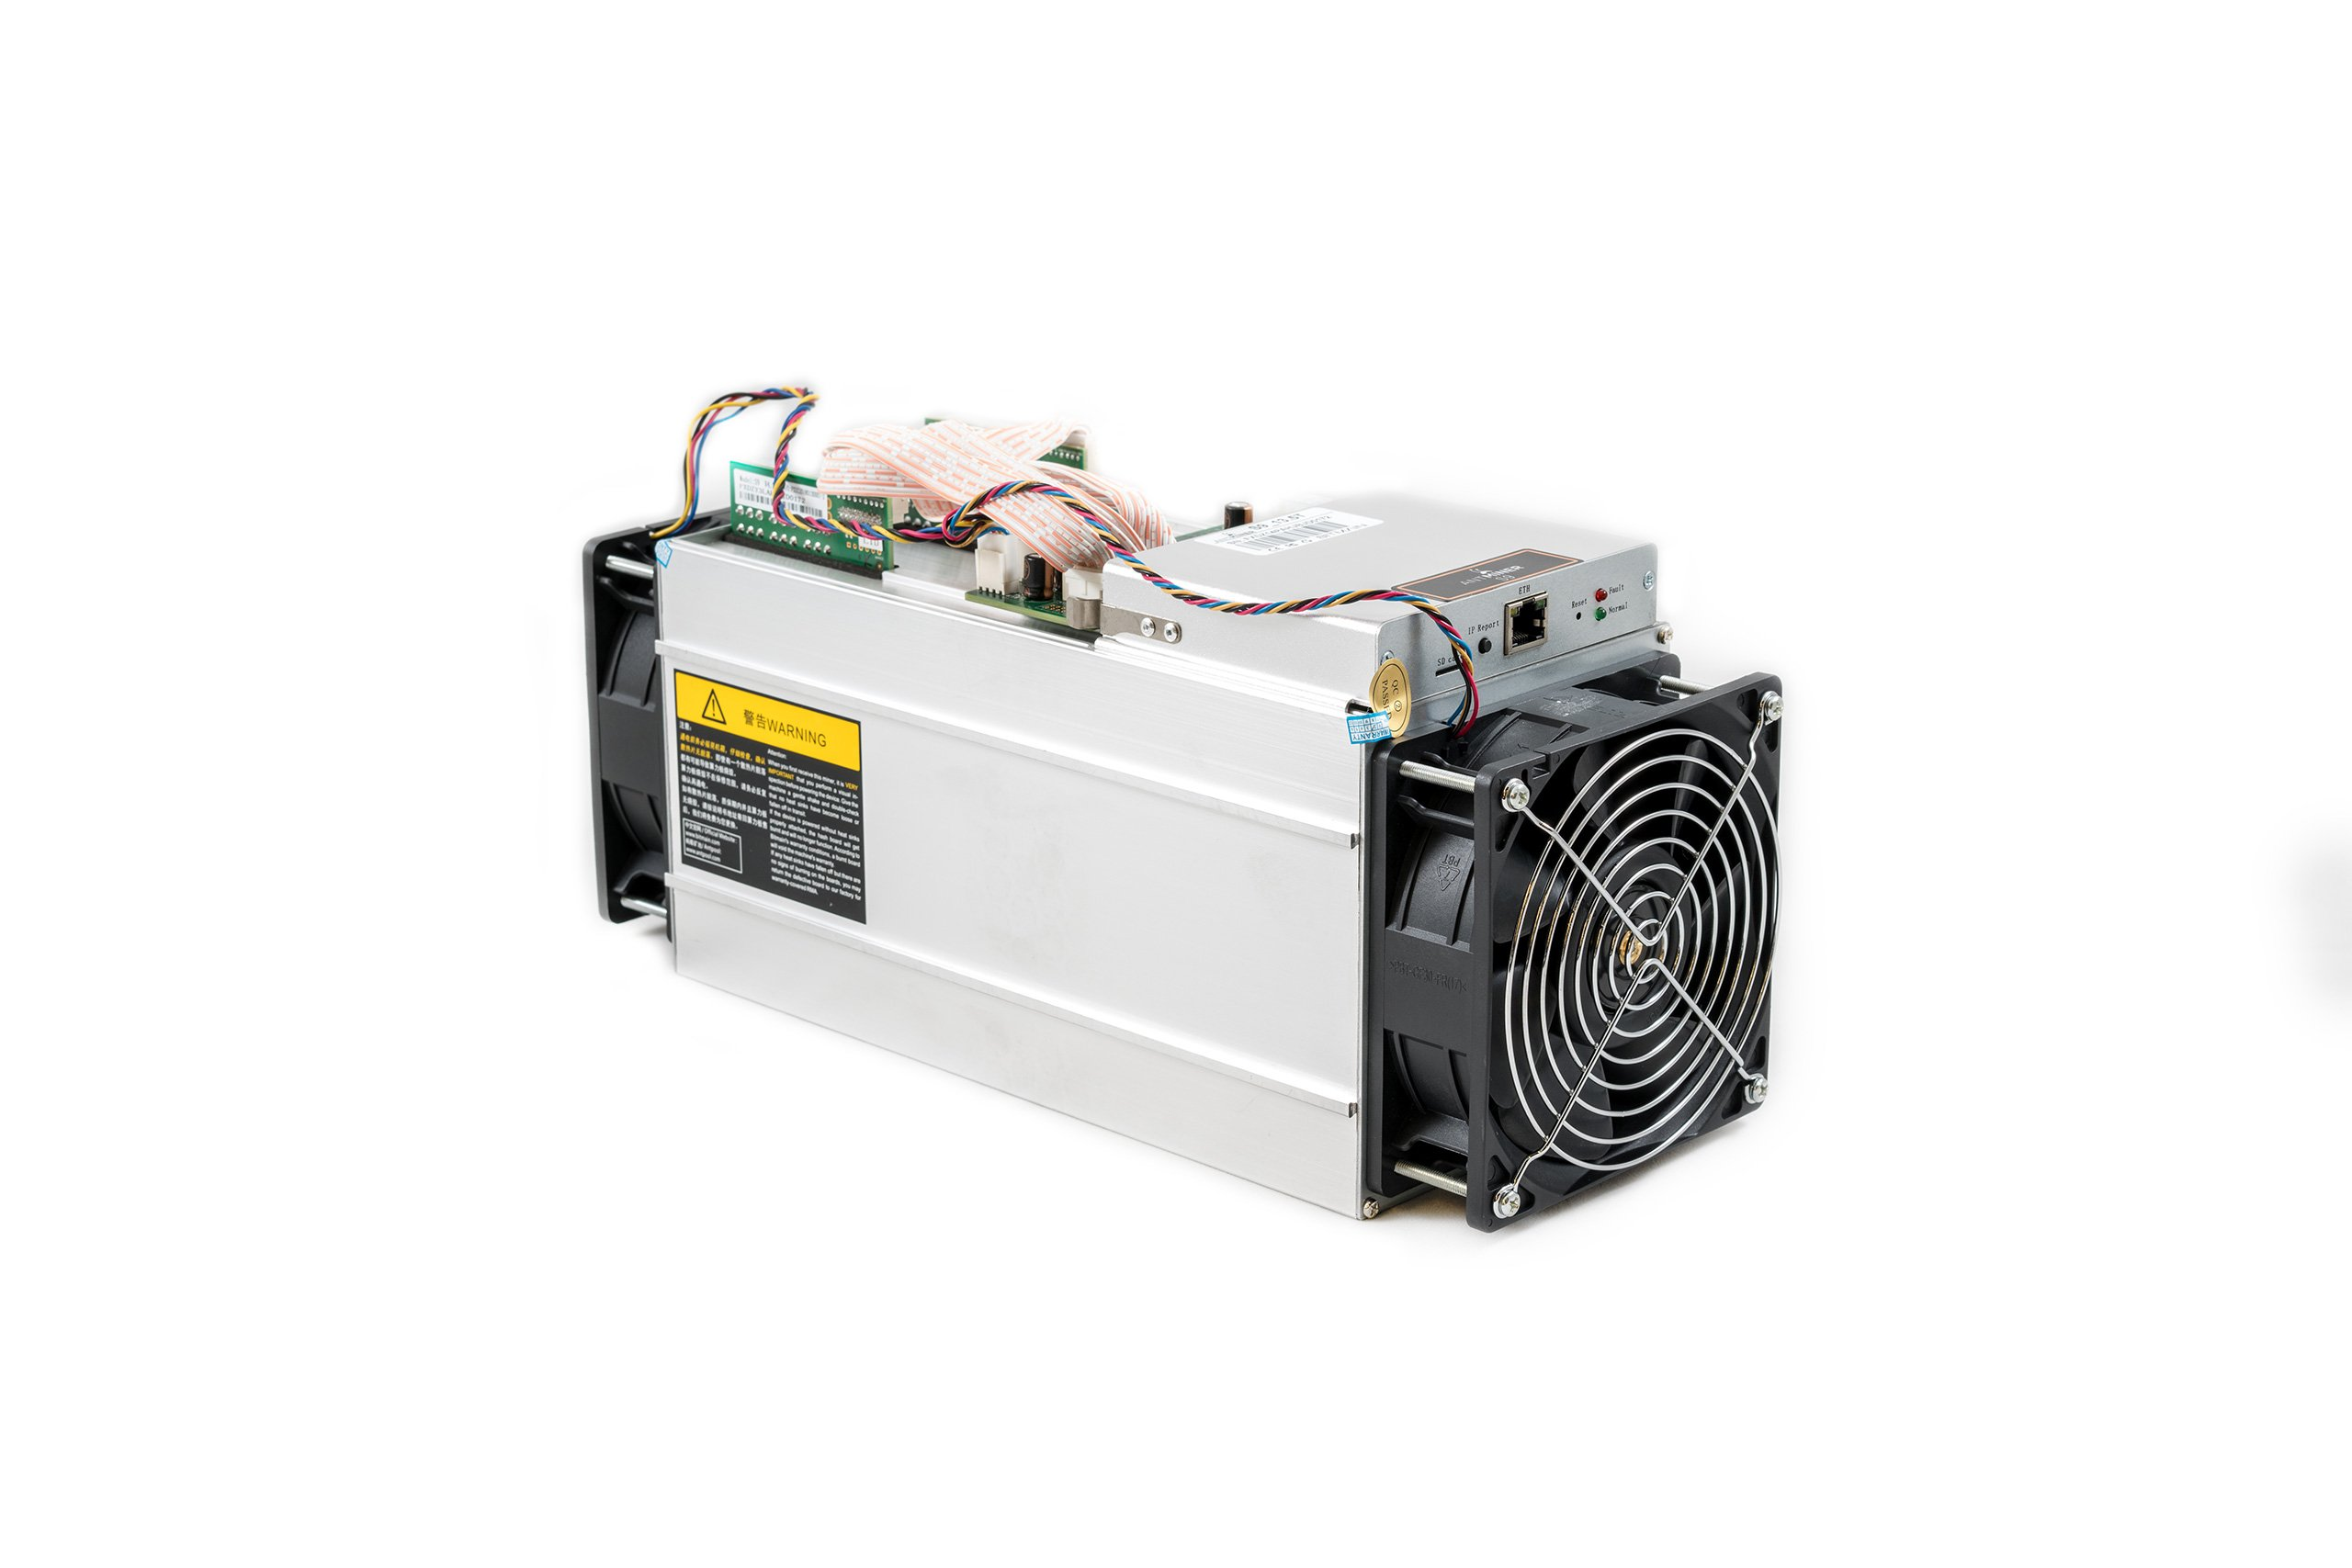 Bitmain Antminer S9 Amps Purpose Of Antminer S9 Different Pools